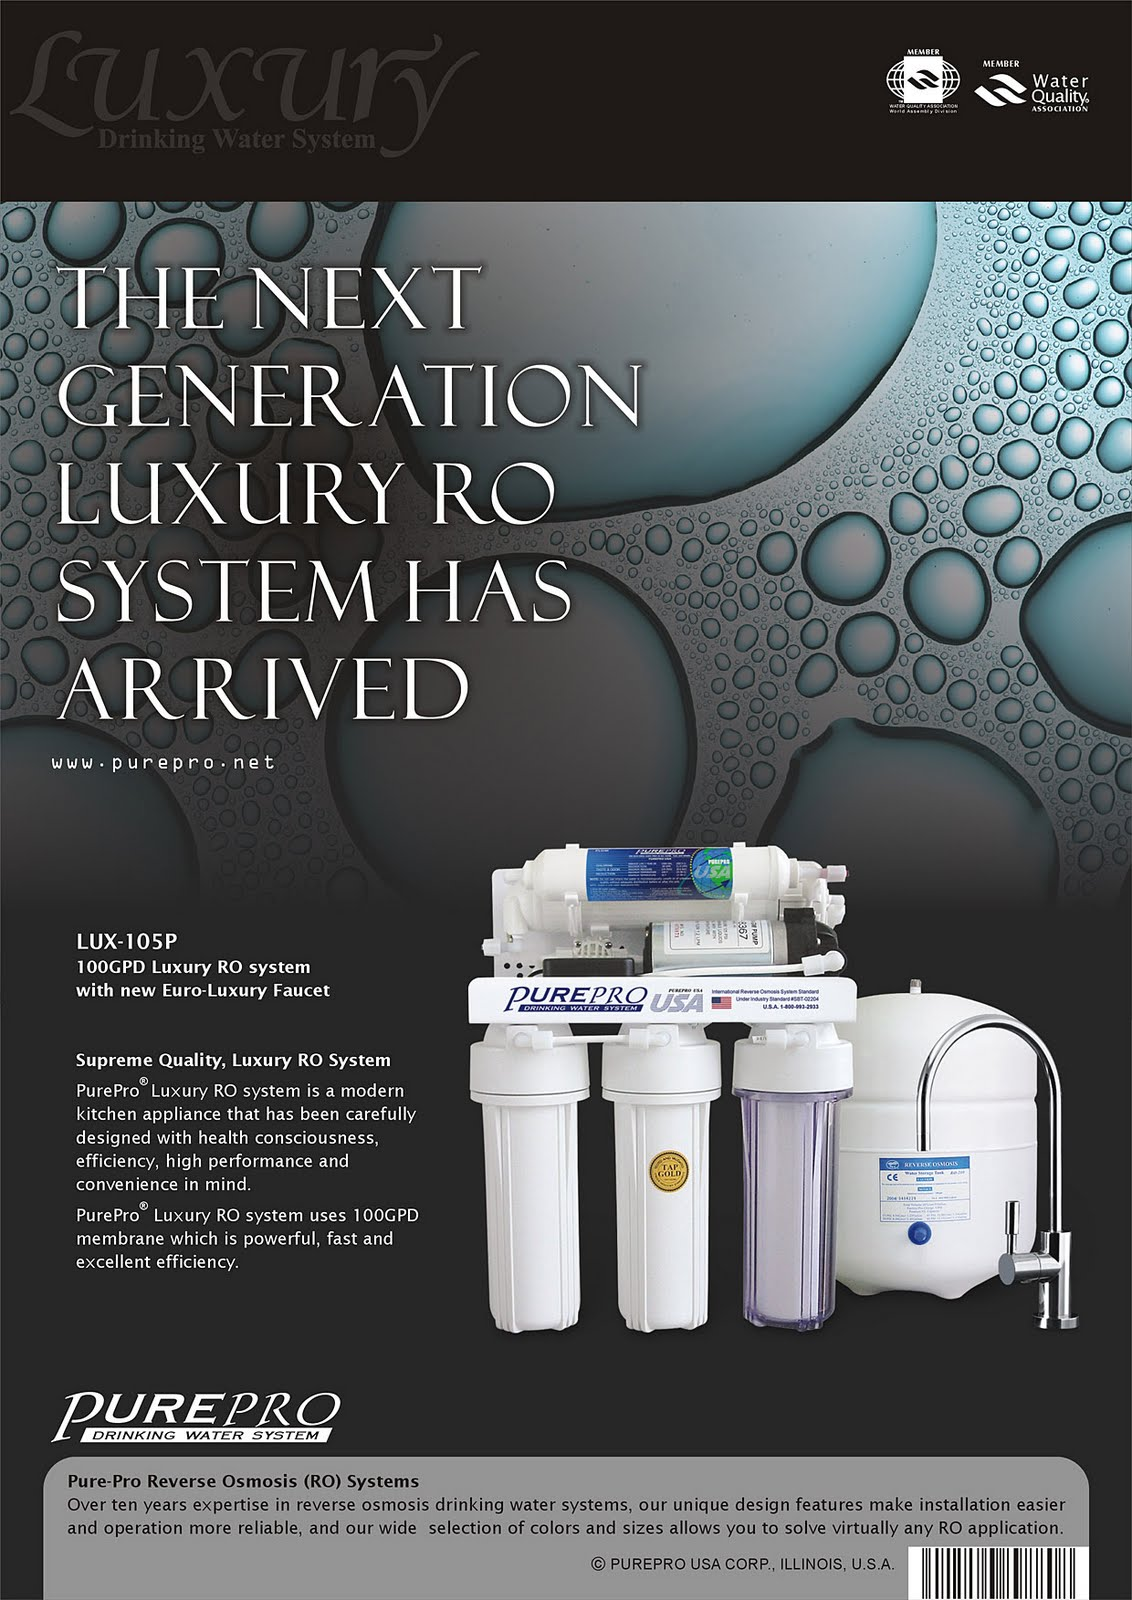 PurePro® LUX-105P Reverse Osmosis Water Filtration System